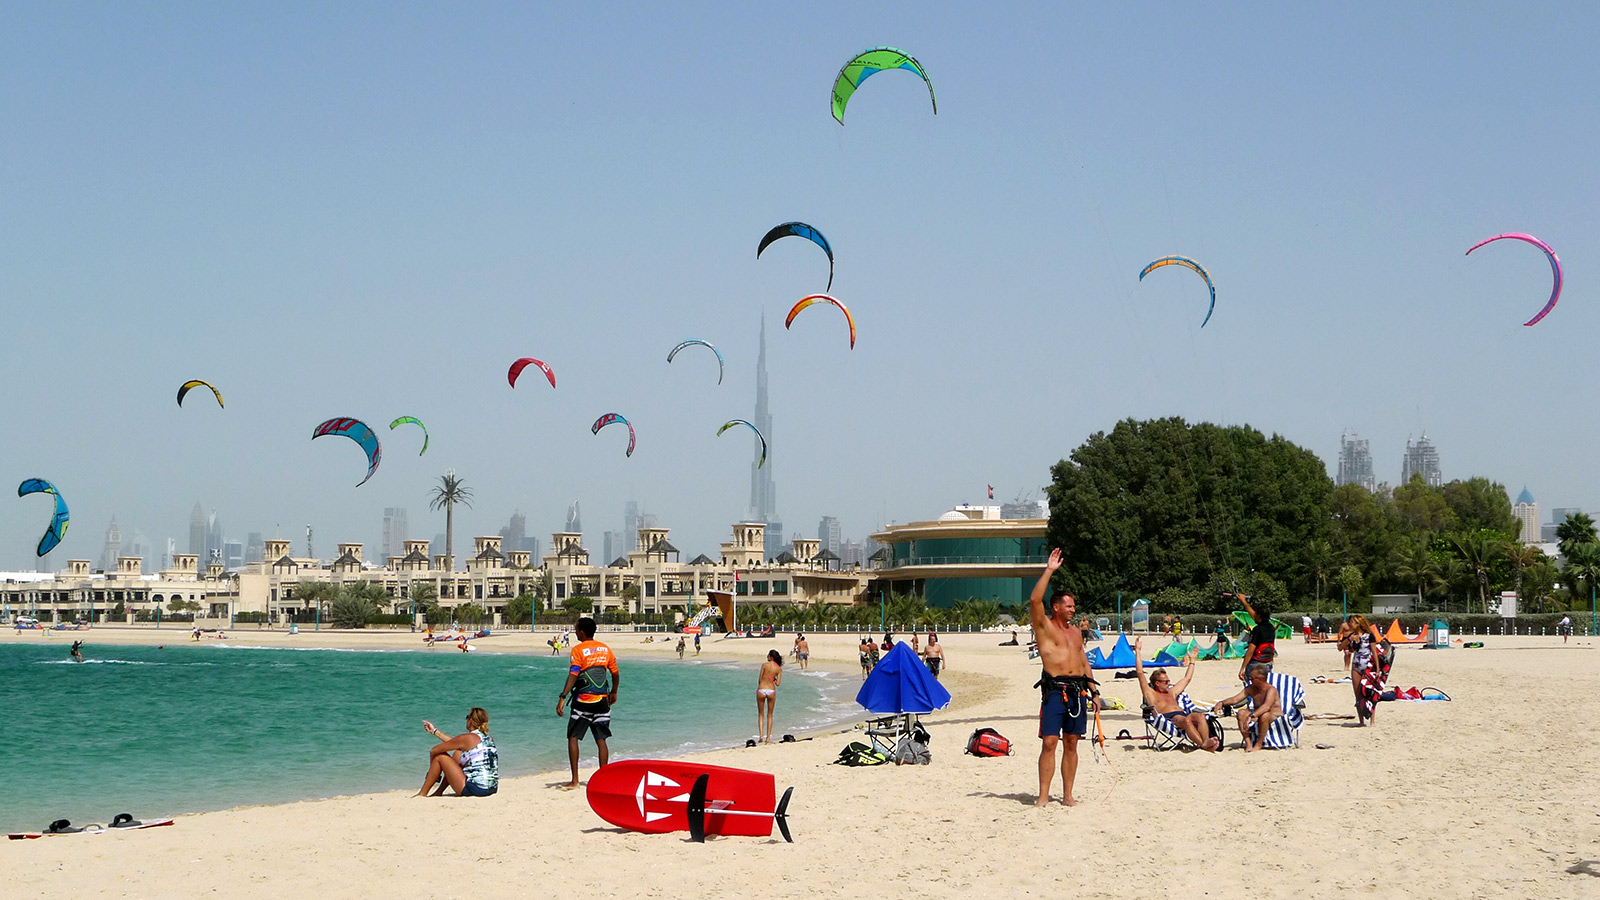 Kites flying at Nessnass beach in Dubai with Burj Khalifa in the background